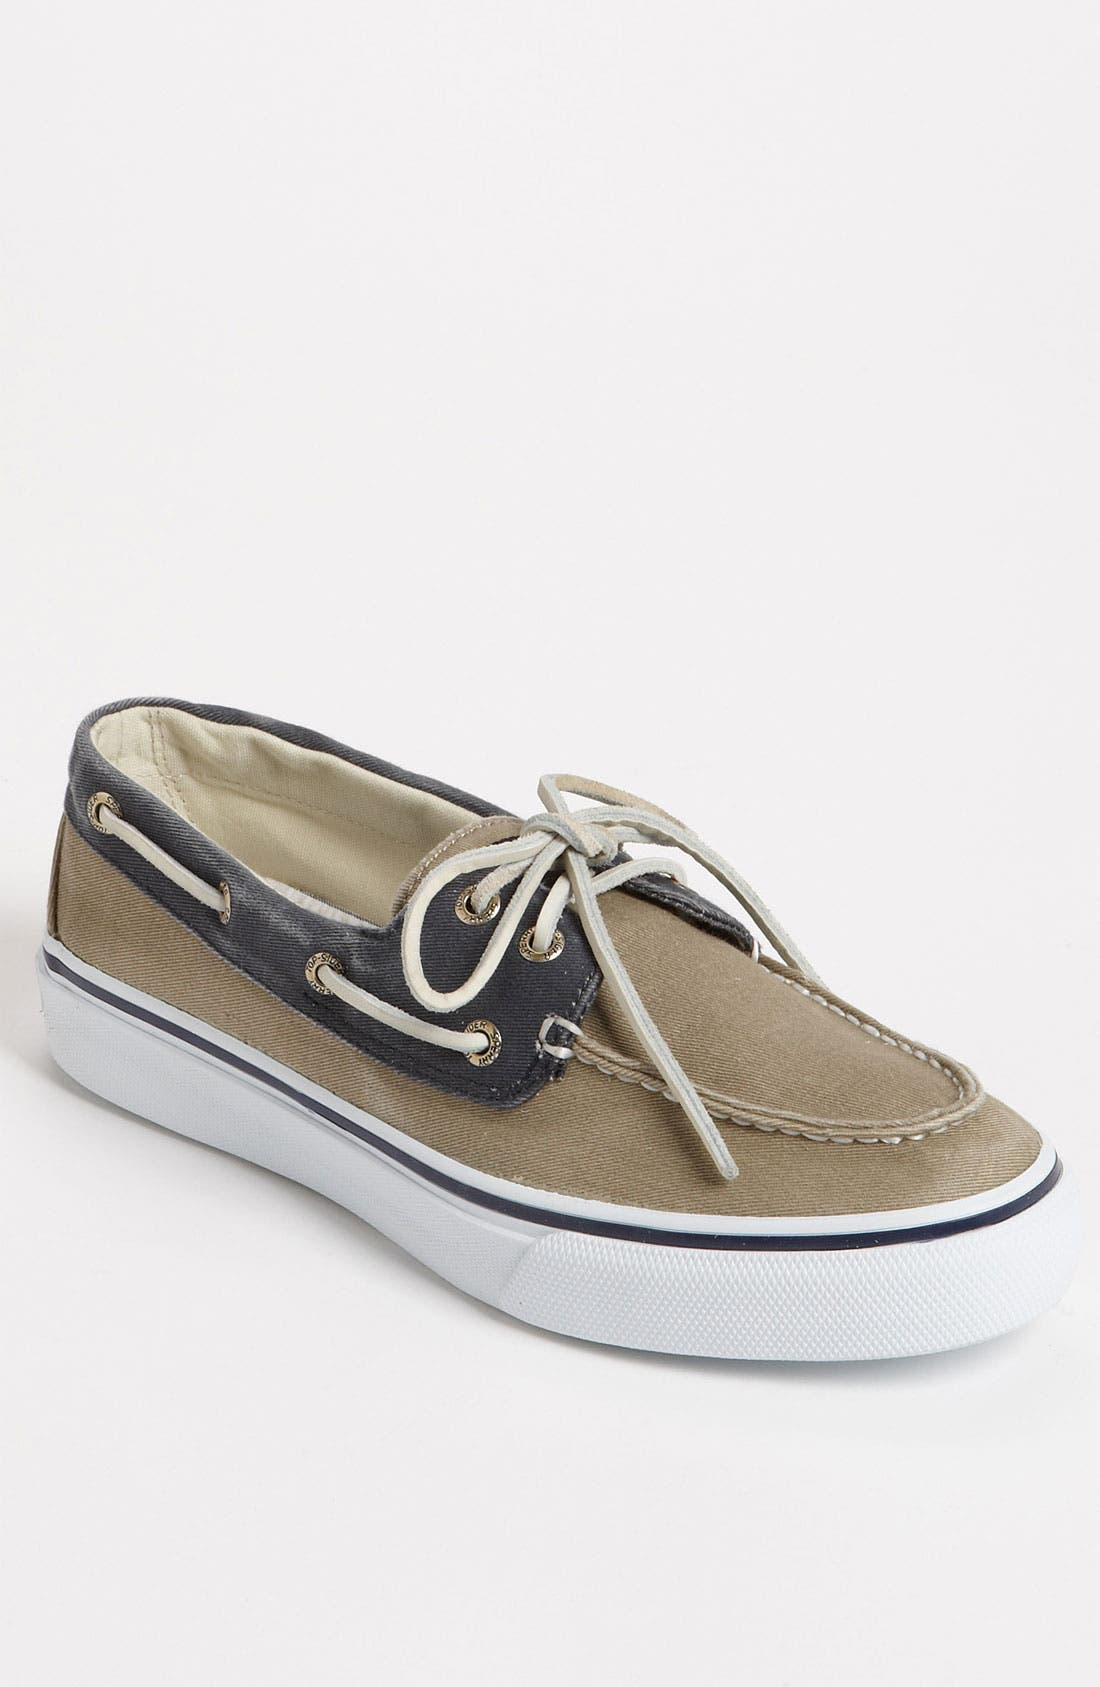 Alternate Image 1 Selected - Sperry Top-Sider® 'Bahama' Boat Shoe